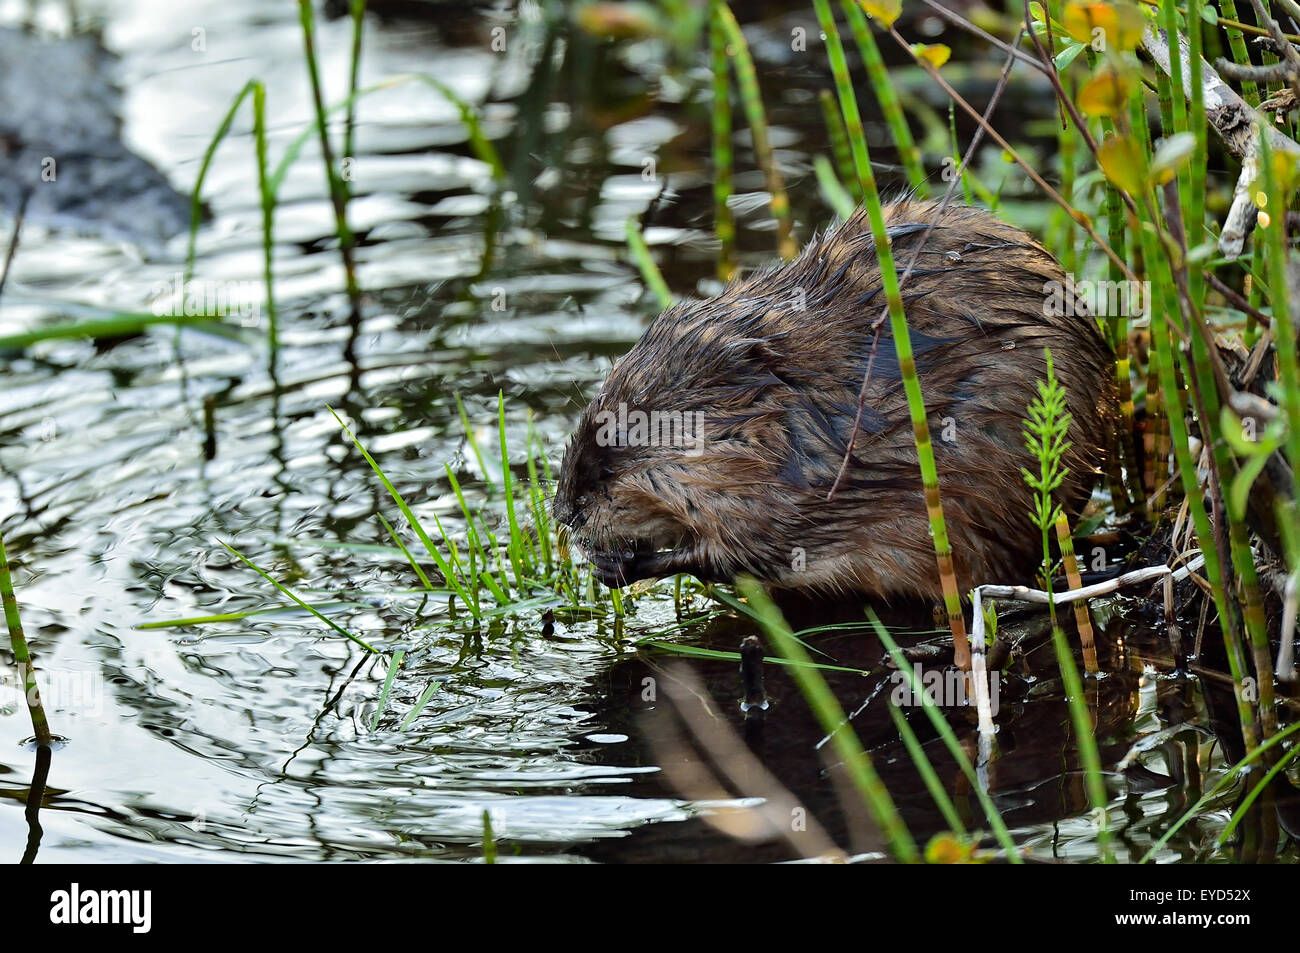 A close up side view of a muskrat 'Ondatra zibethicus', using his front paws to hold green vegetation that - Stock Image